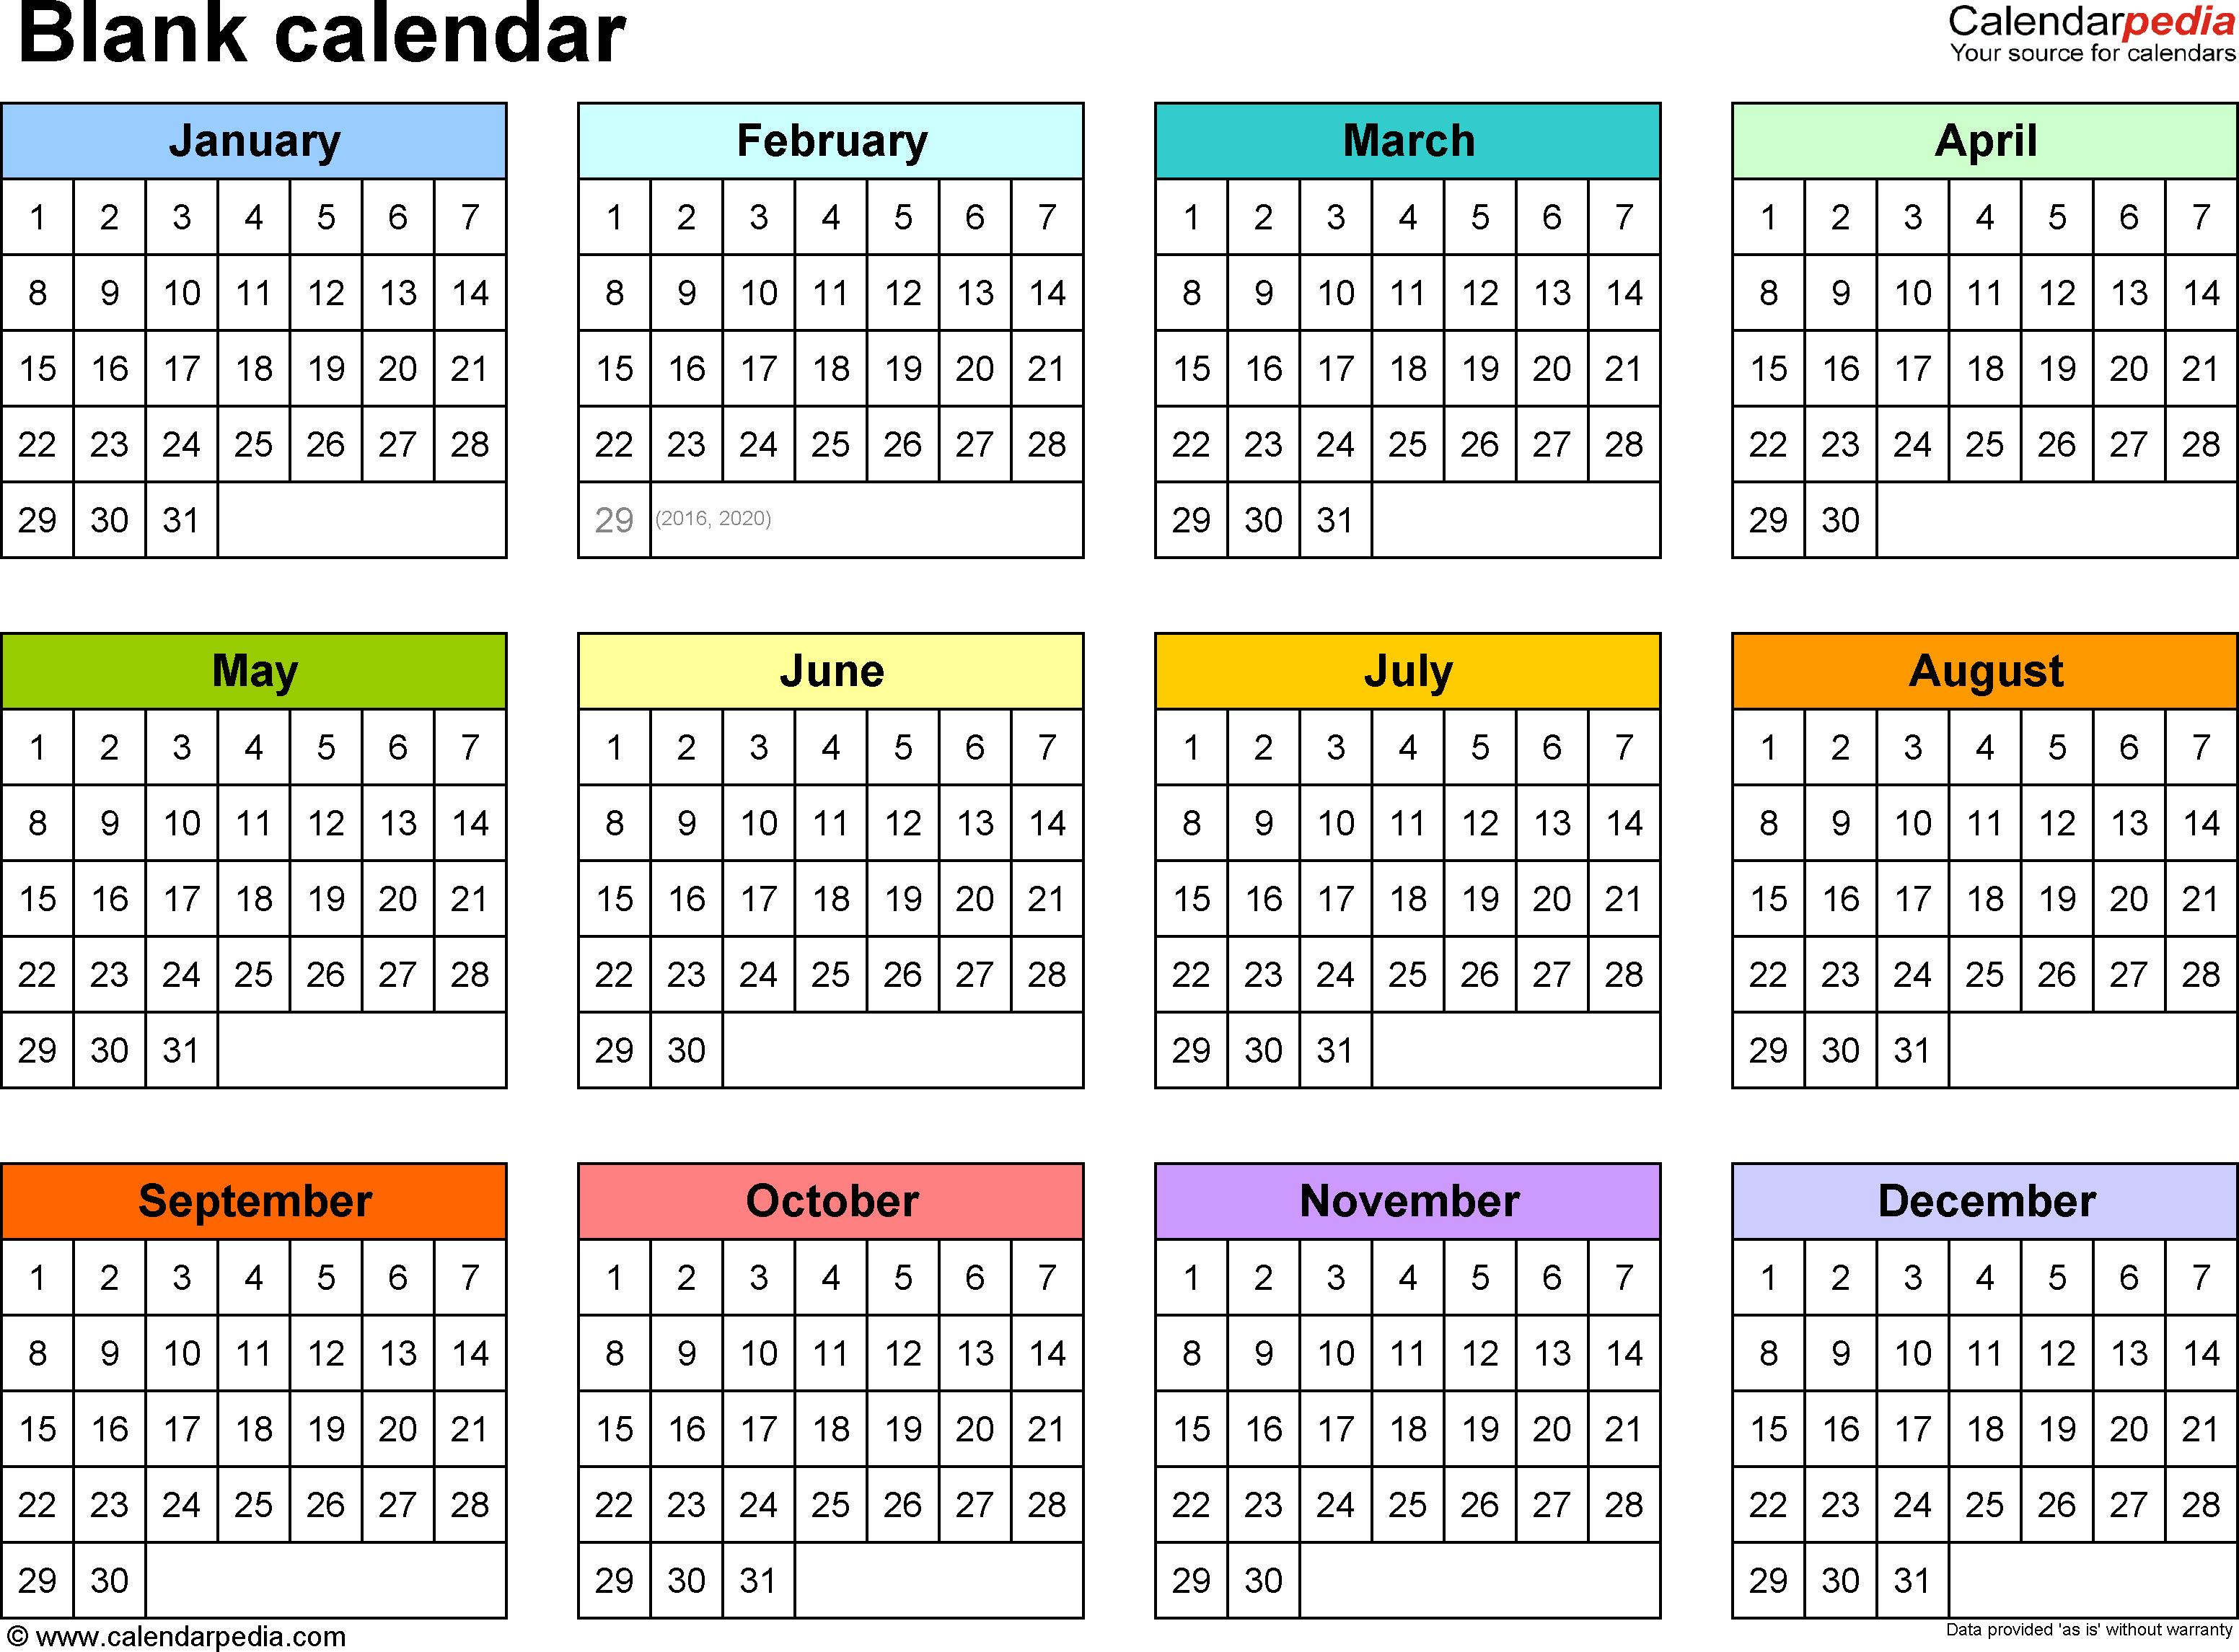 Blank Calendar - 9 Free Printable Microsoft Word Templates regarding Template For Calendar With 12 Months On One Page